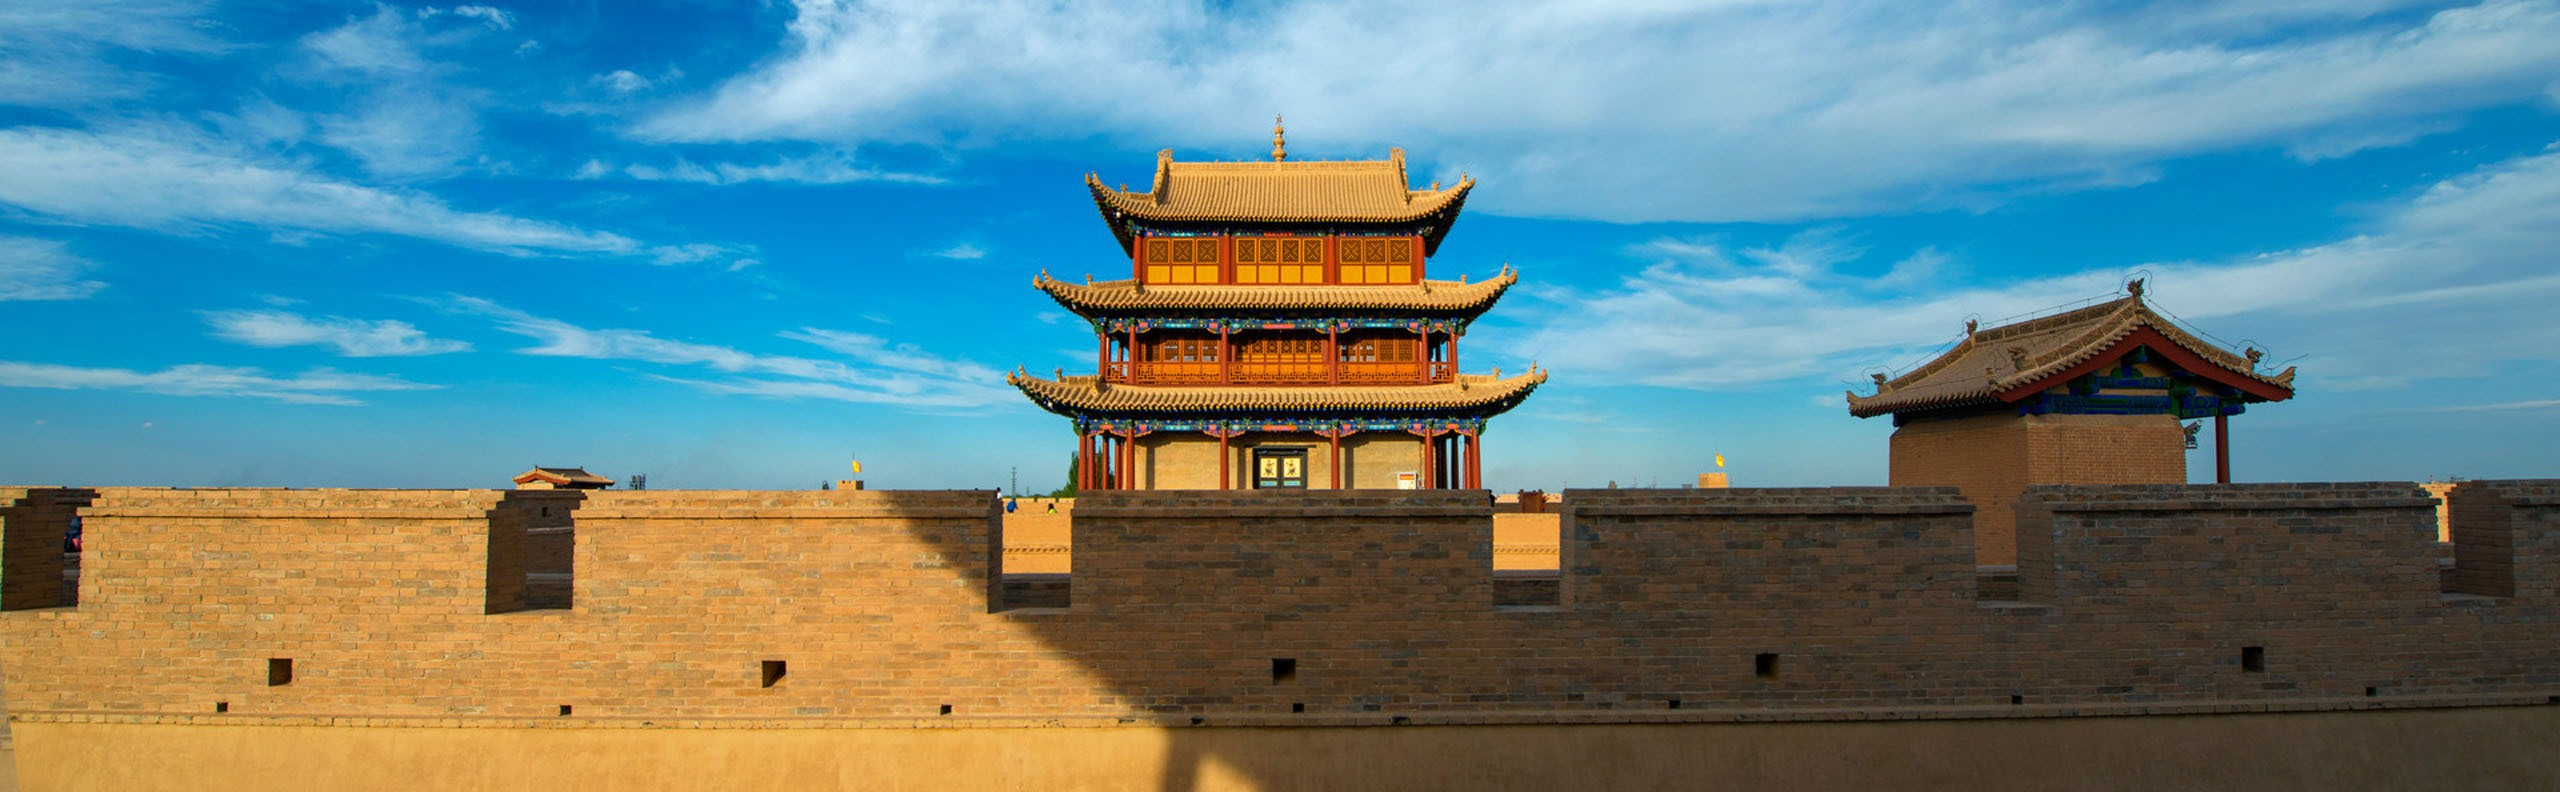 13 Days Tibet and Silk Road Adventures on the China Orient Express (Group Tour)